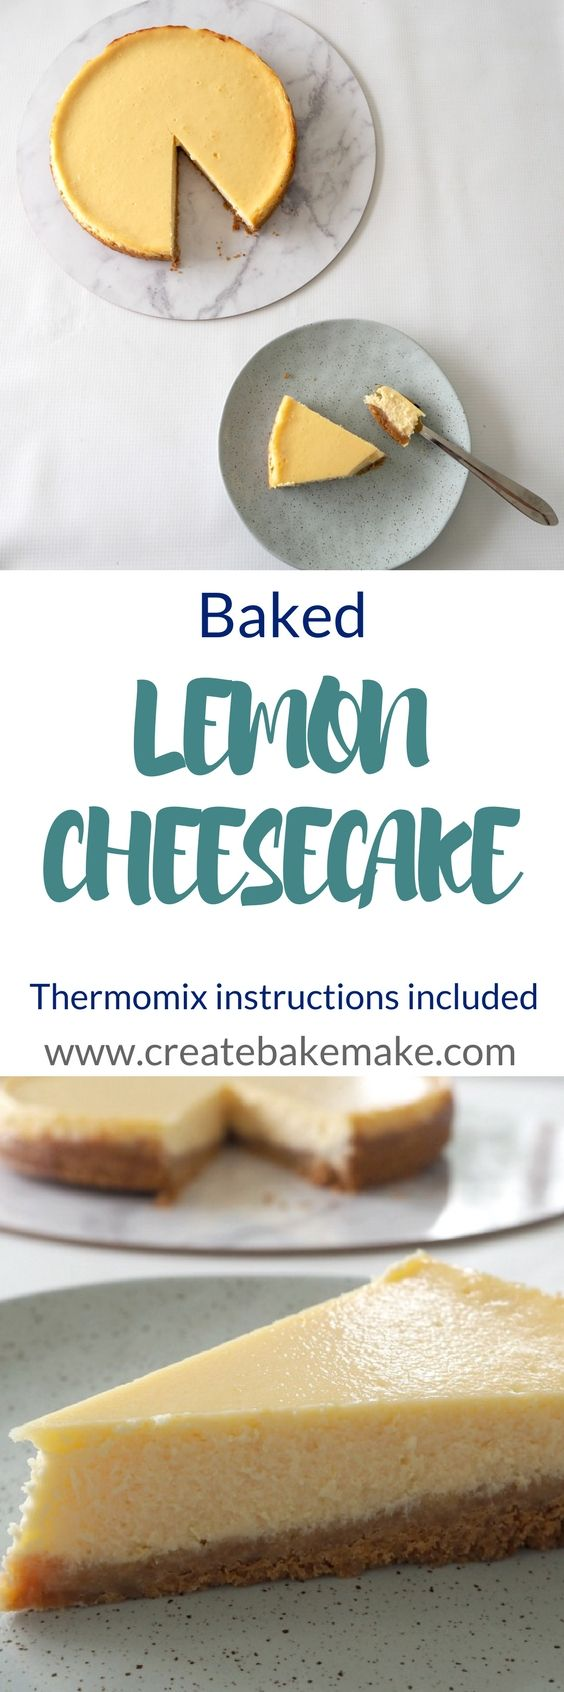 Baked Lemon Cheesecake Recipe